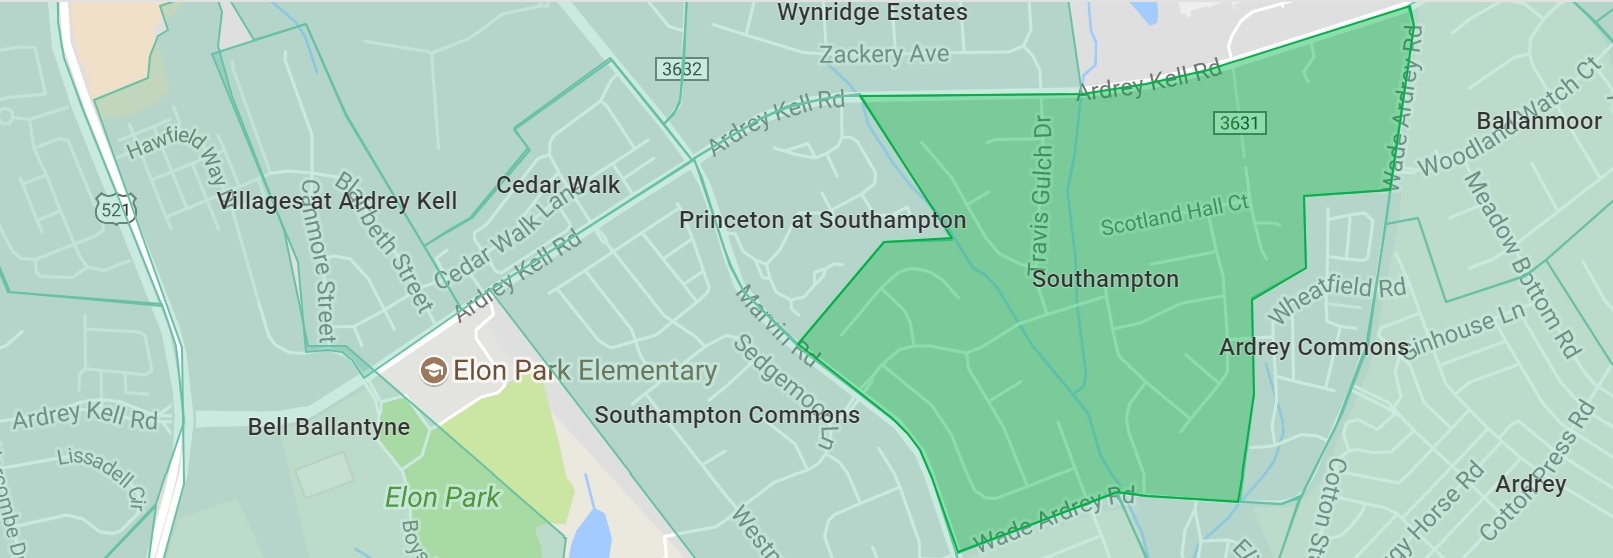 Southampton and Southampton Commons are hot Ballantyne neigborhoods in Charlotte